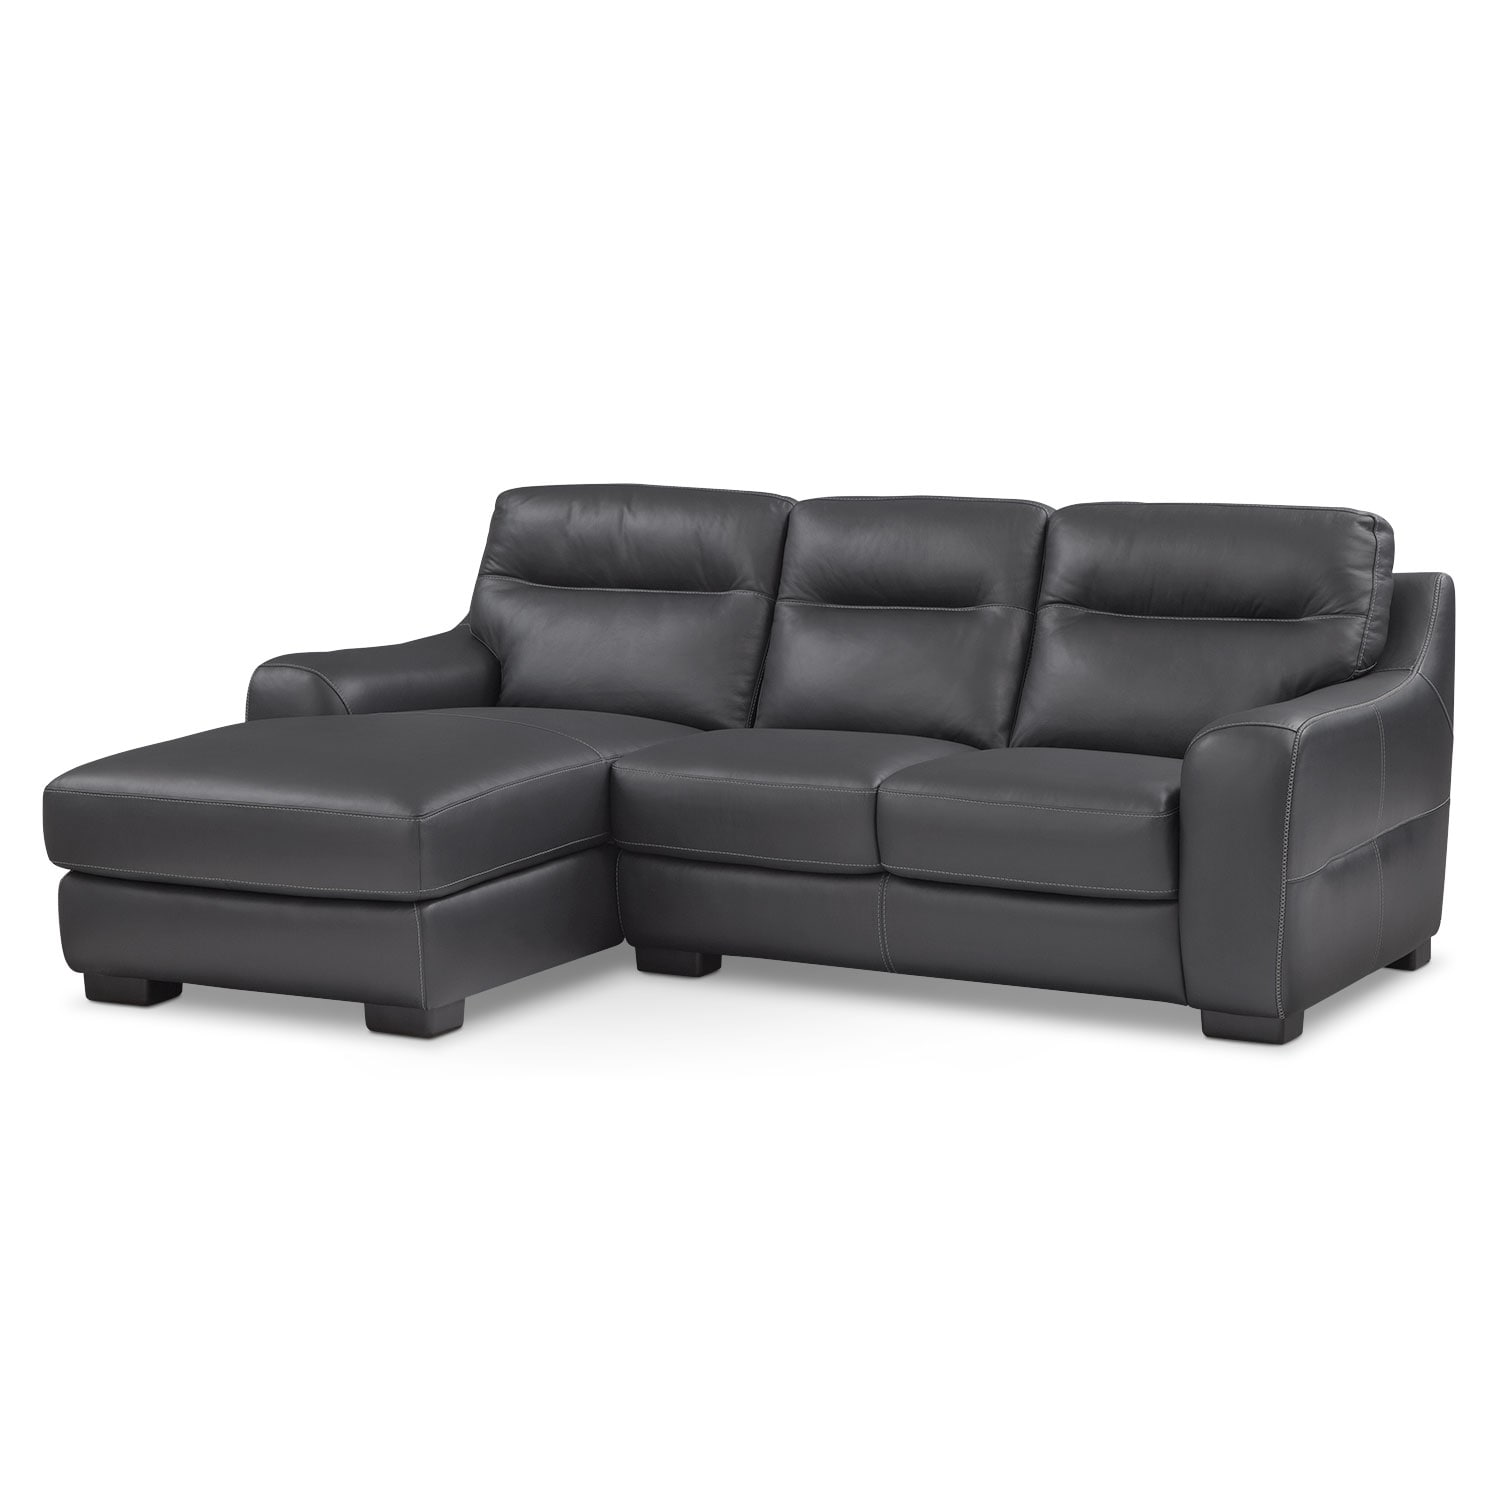 Living Room Furniture - Rocco Black 2 Pc. Left-Facing Chaise Sectional